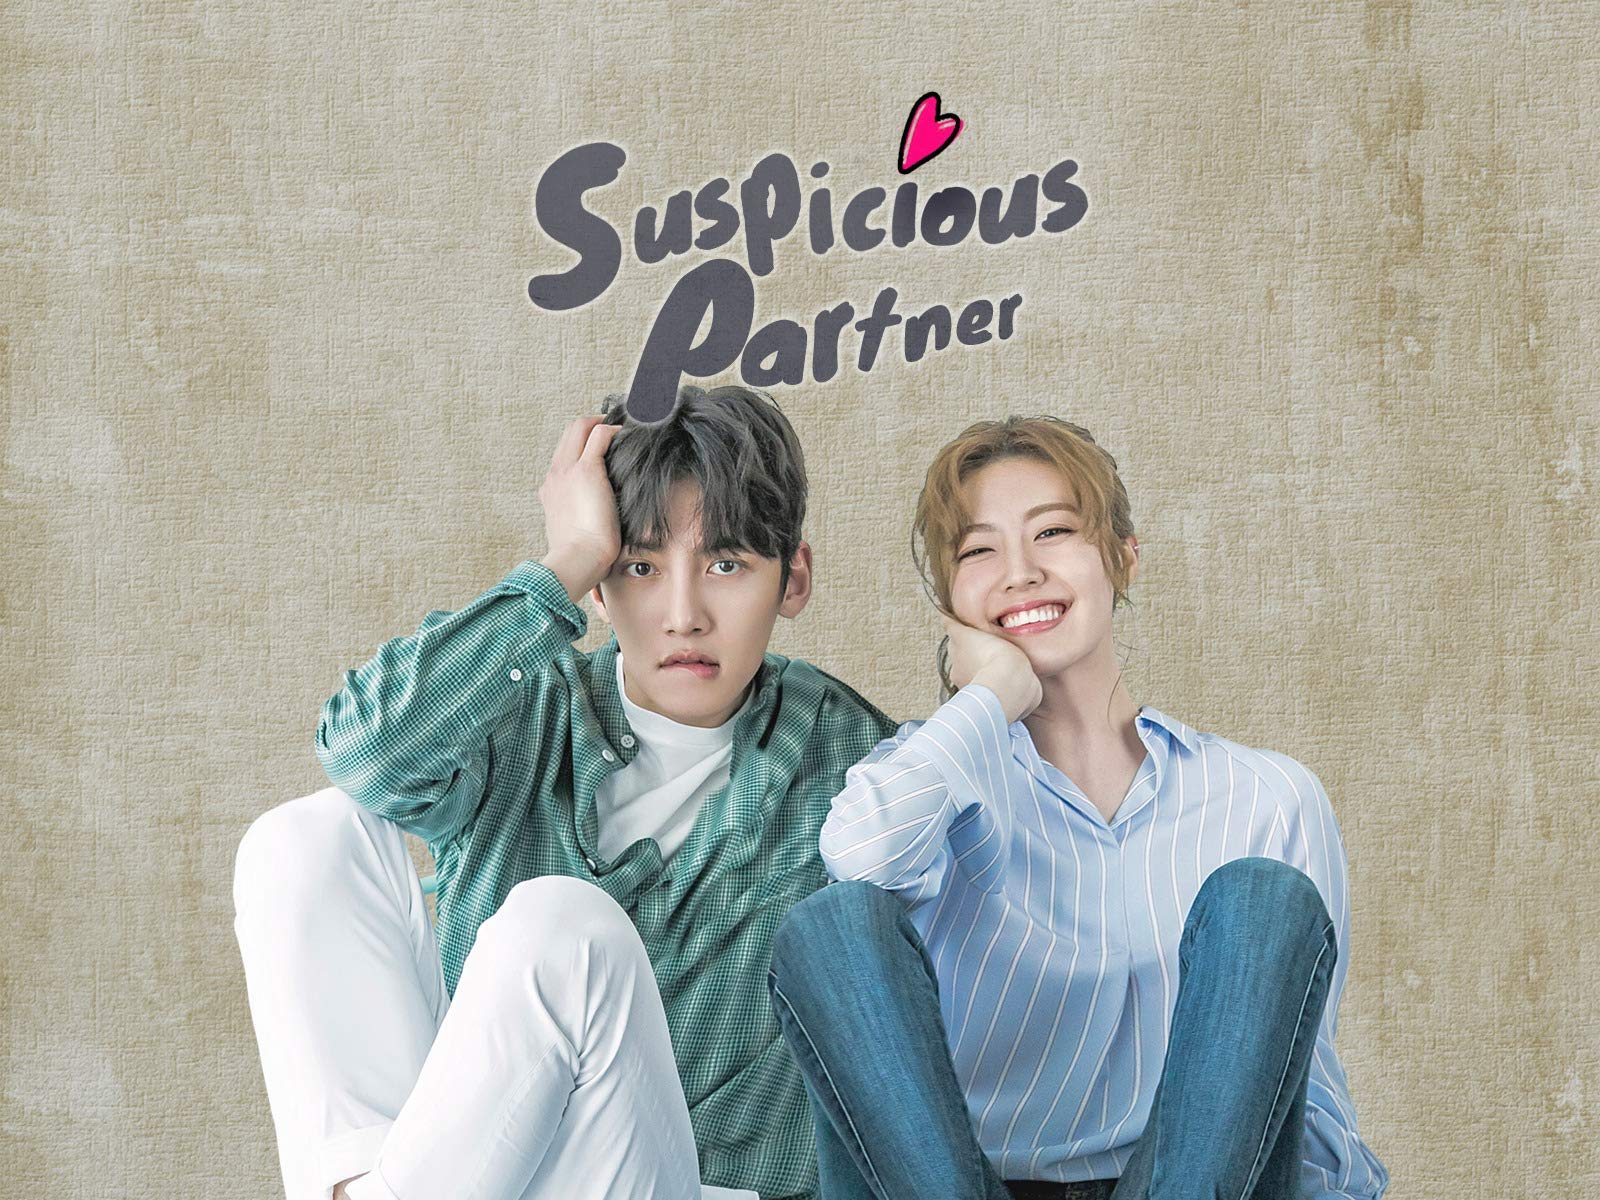 Suspicious Partner on Amazon Prime Video UK